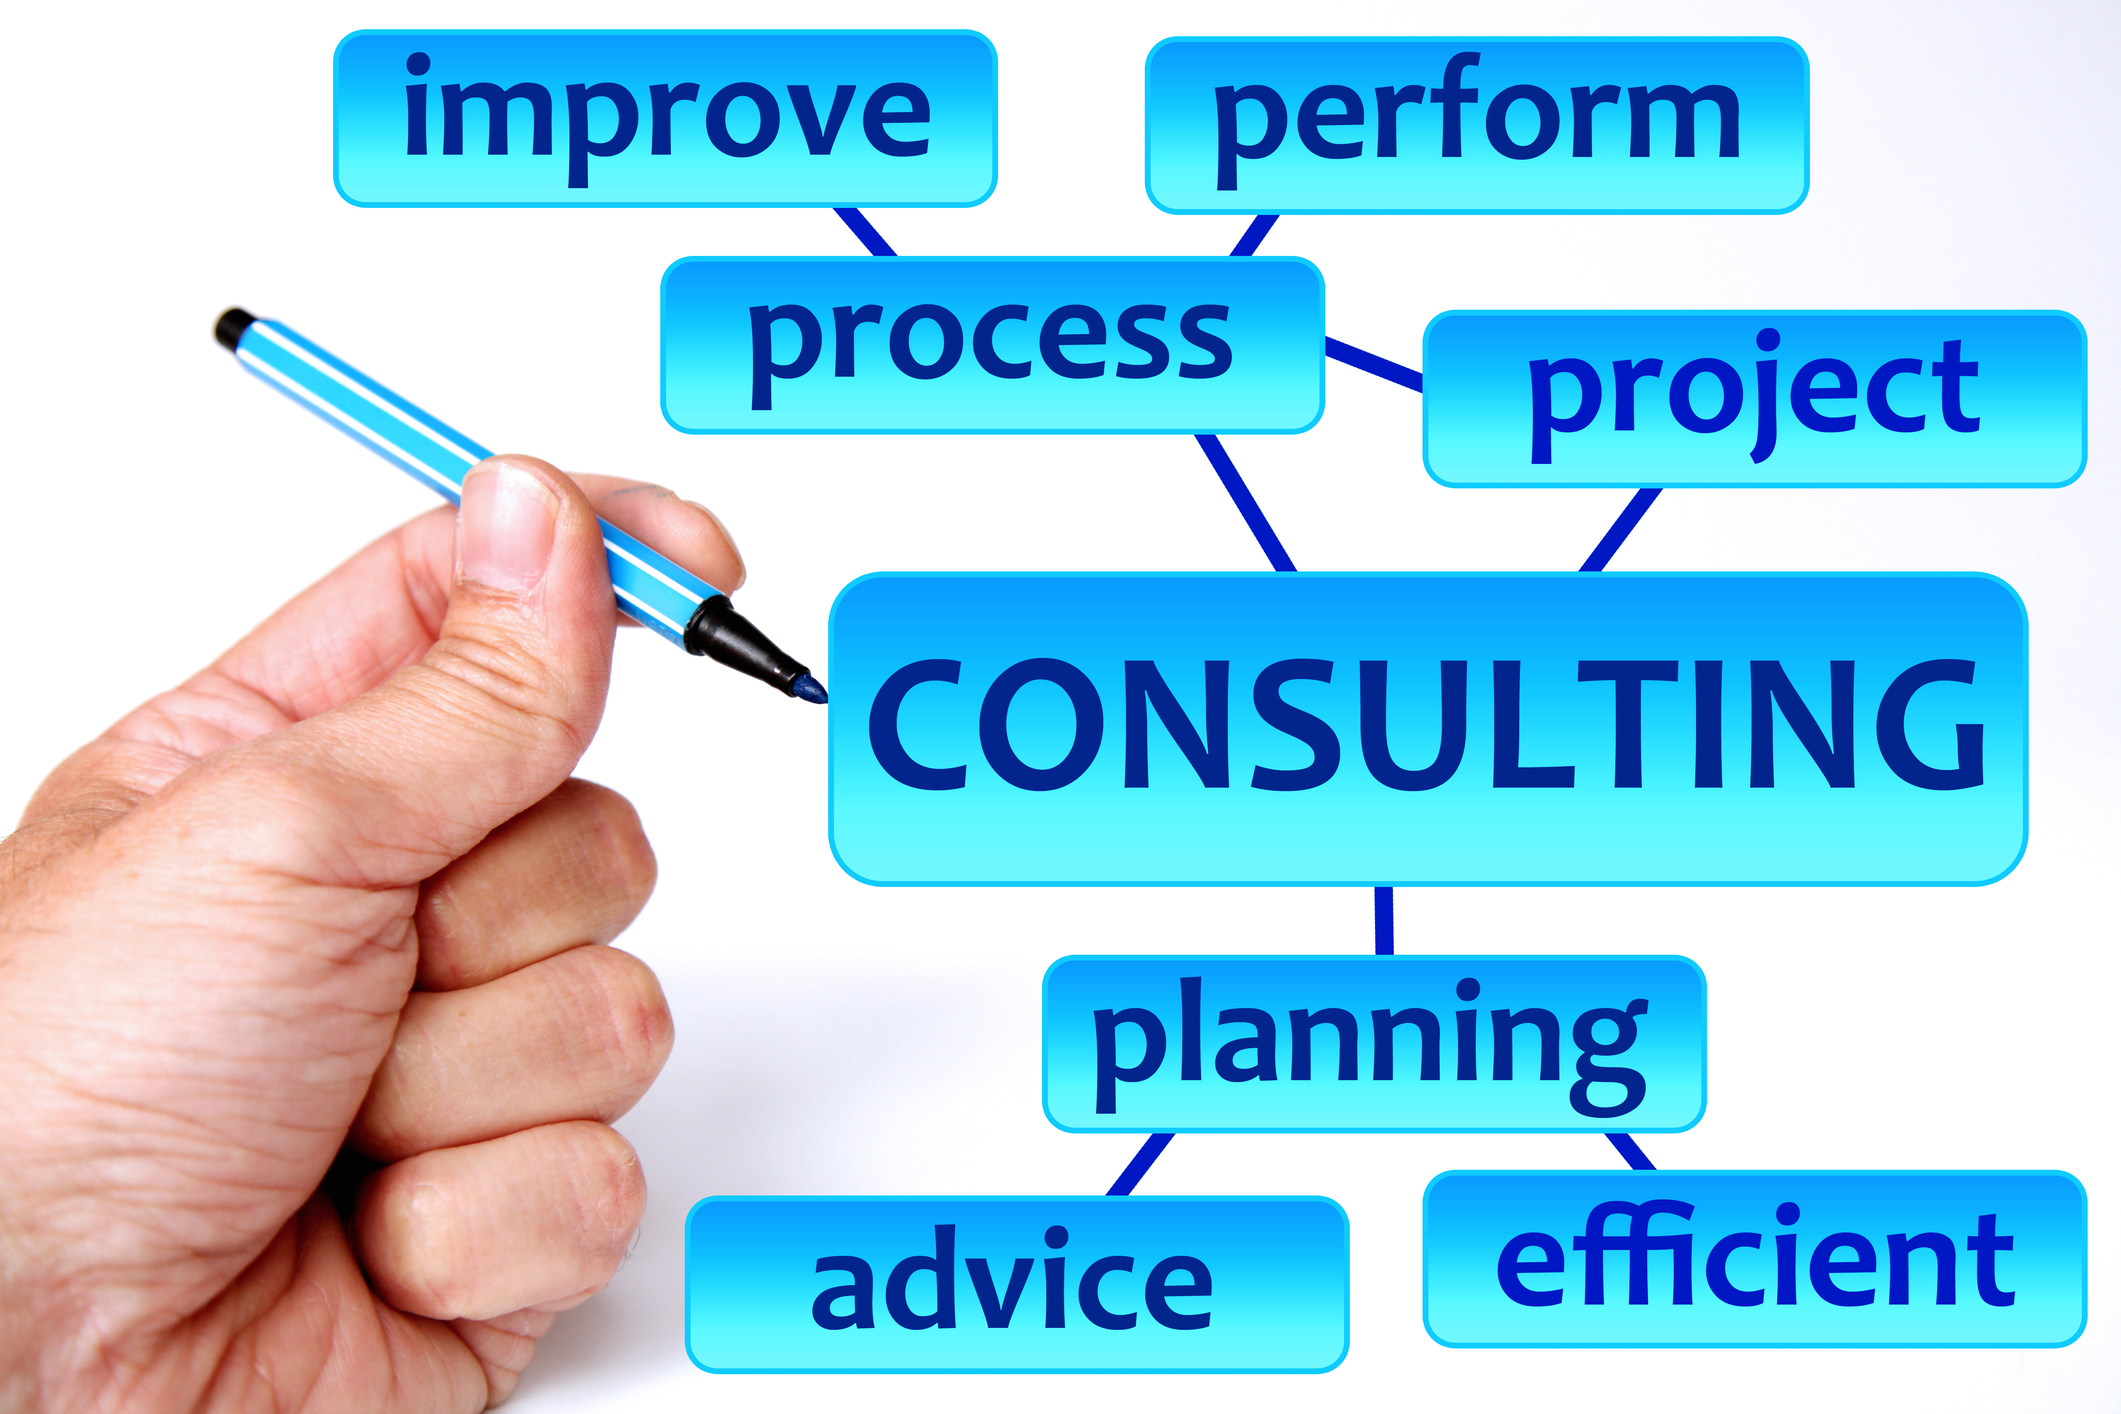 article analysis business process improvement Business process improvement (bpi) to an organization should be as essential and natural as breathing is to life unfortunately, this is not the case process improvement is frequently thought of as disruptive, expensive, time consuming and ineffective.